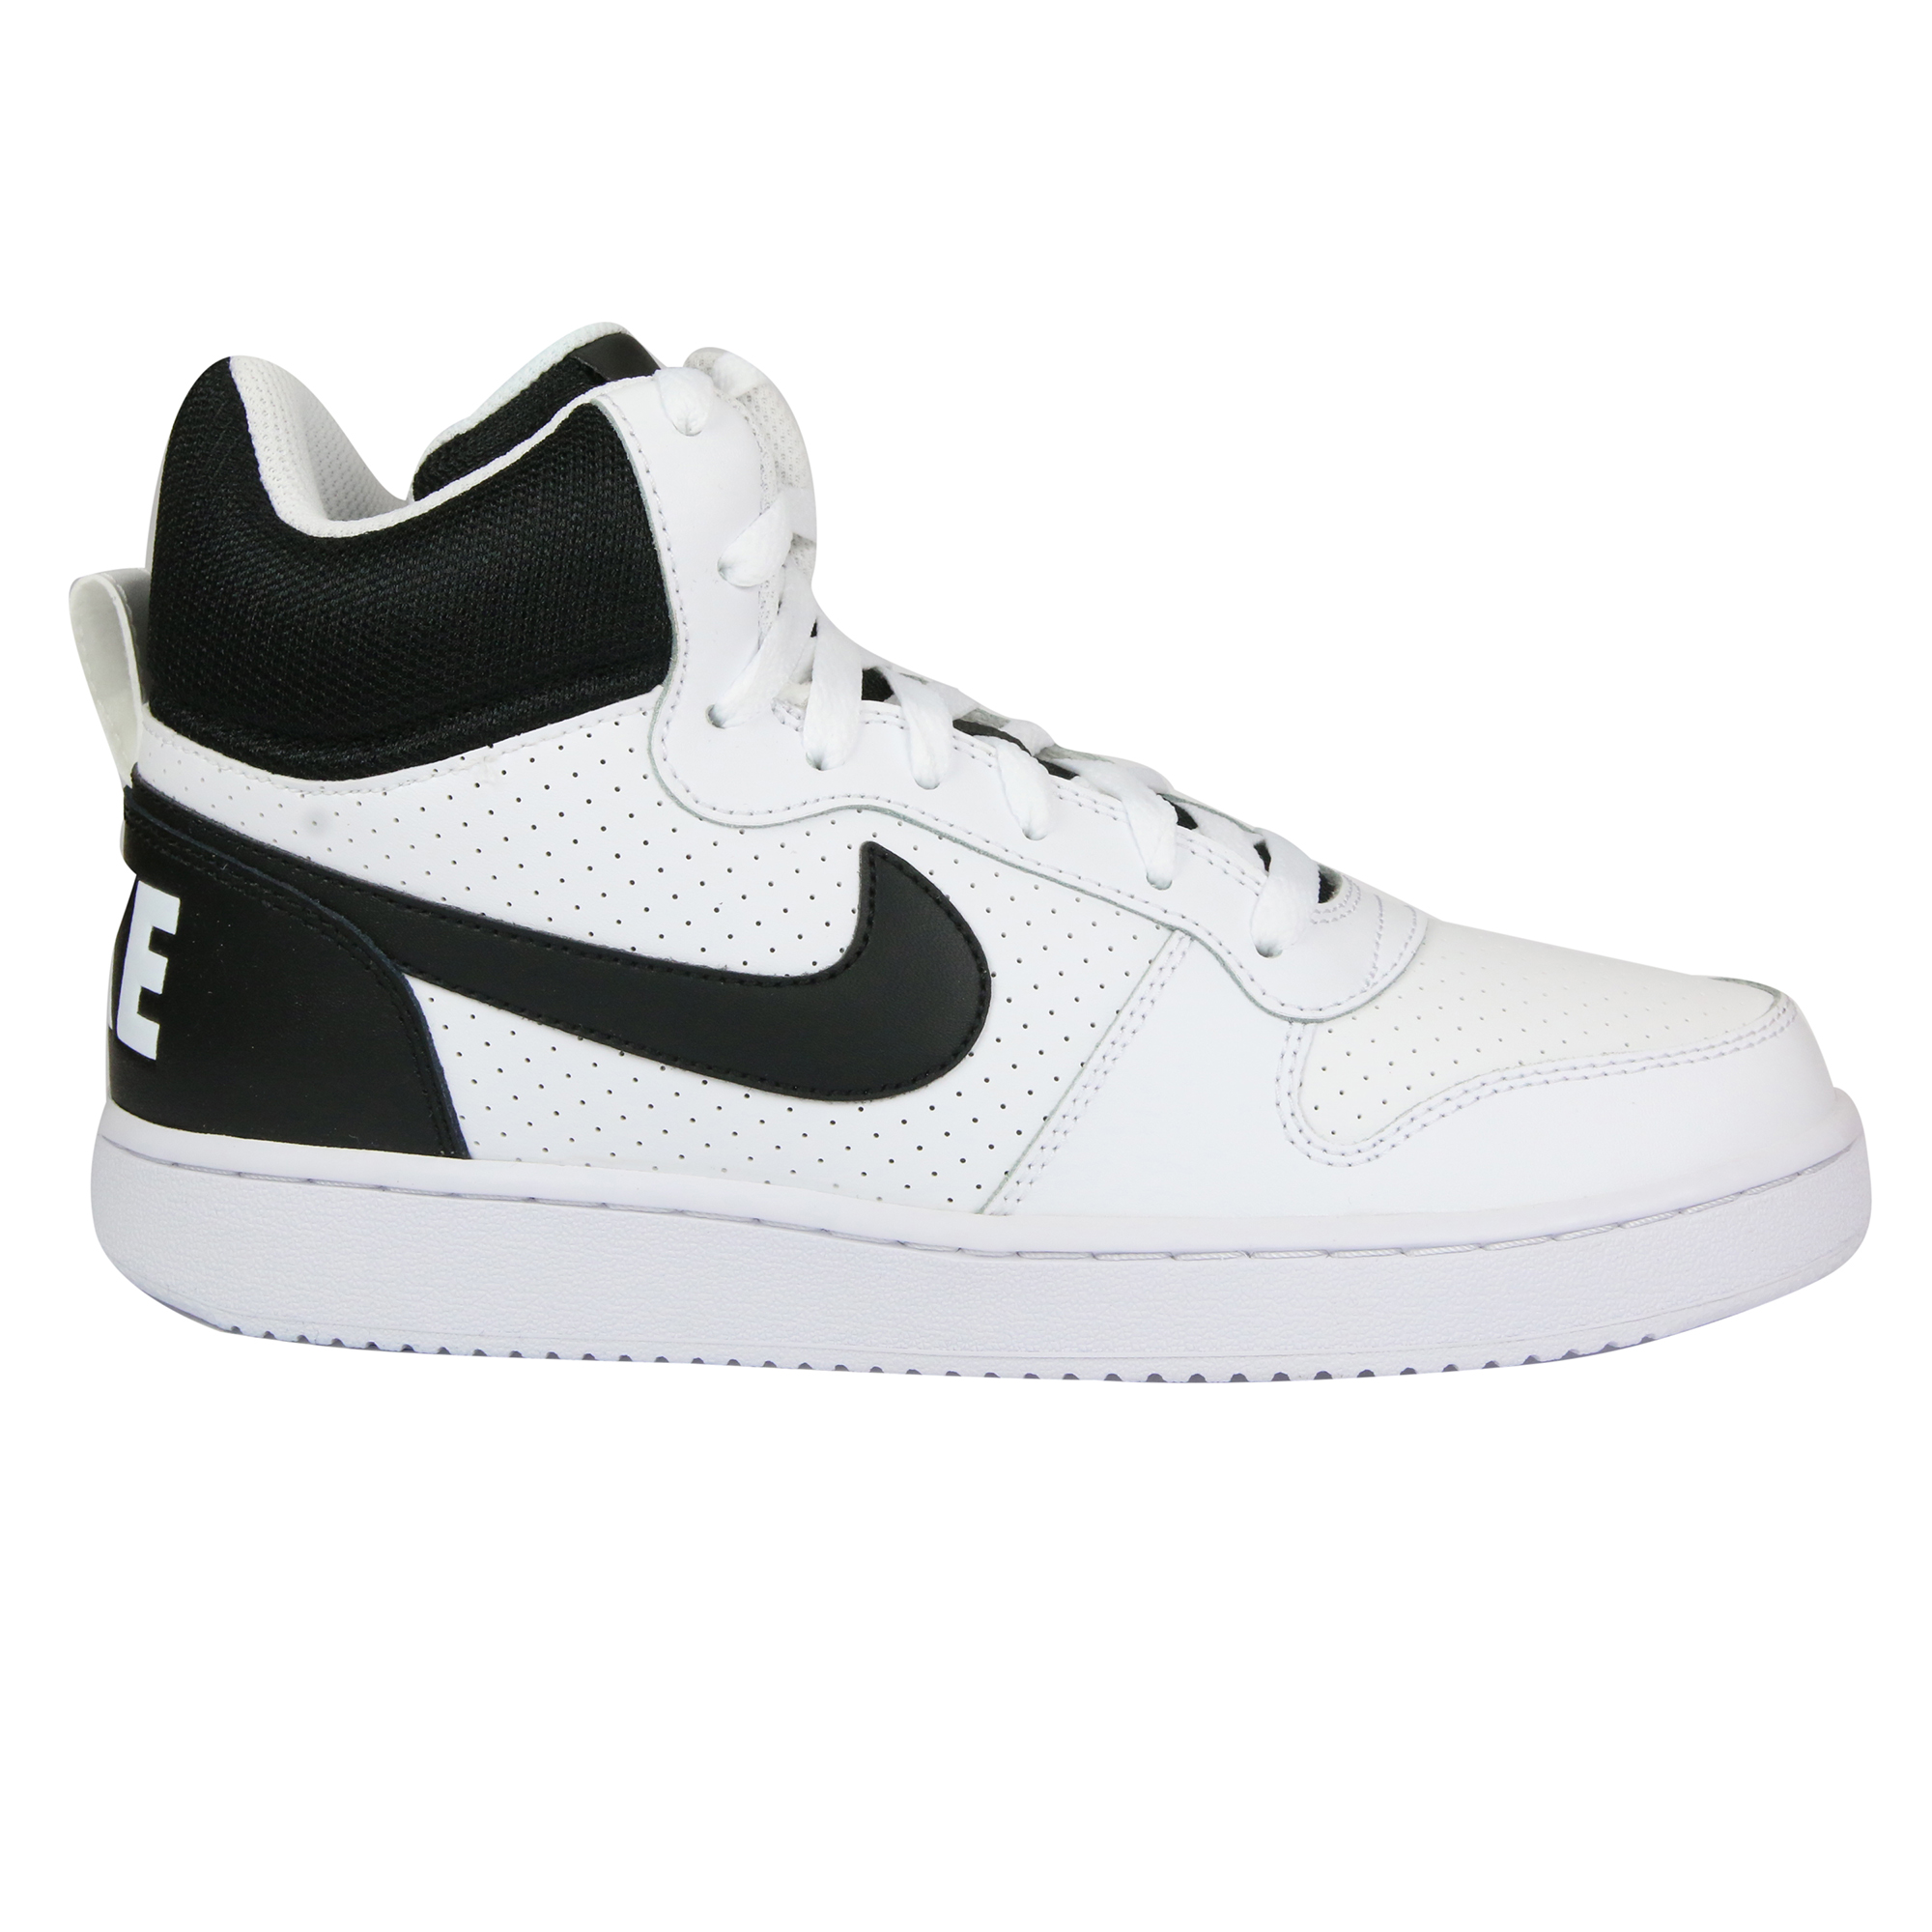 nike court borough mid schuhe turnschuhe sneaker herren ebay. Black Bedroom Furniture Sets. Home Design Ideas